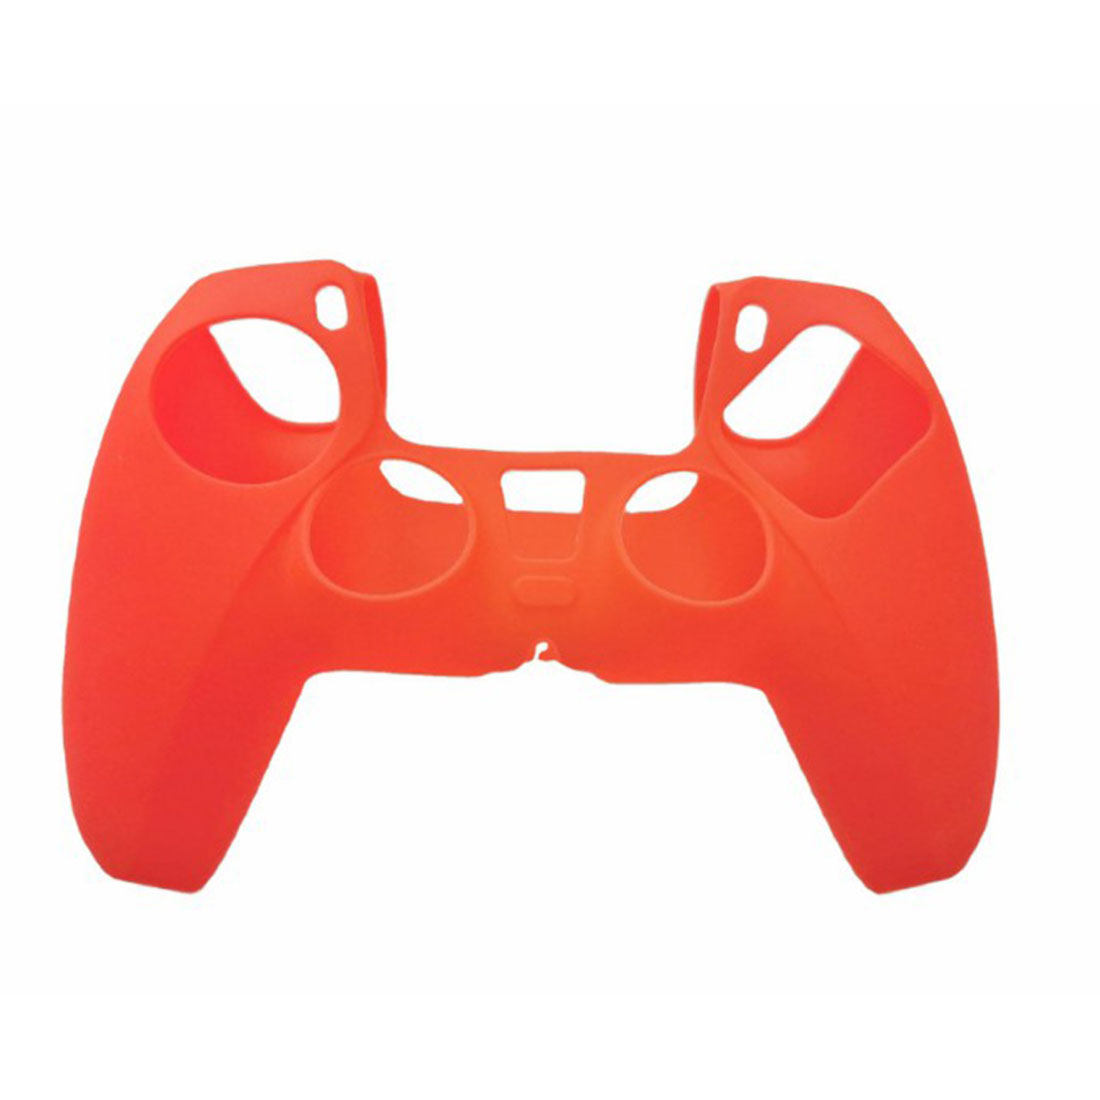 Silicone Case Anti-Slip Protective Cover for PS5 Controller